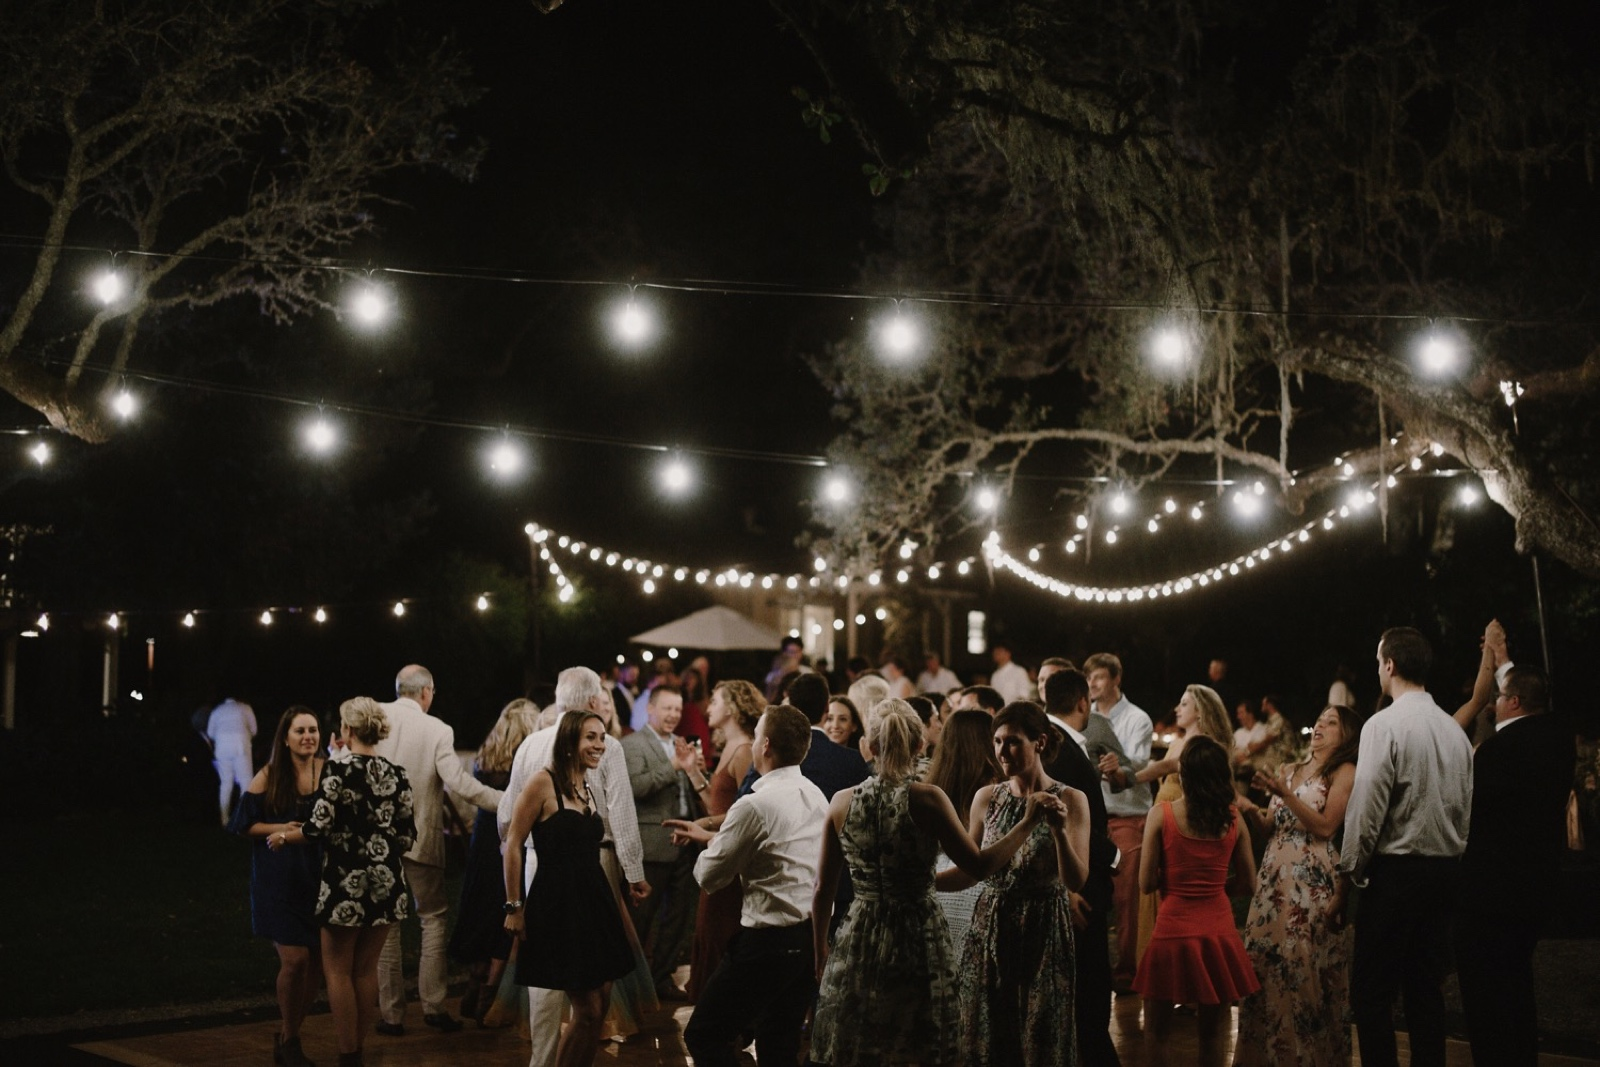 Beltane_Ranch_Wedding_LGBTQ-335.jpg